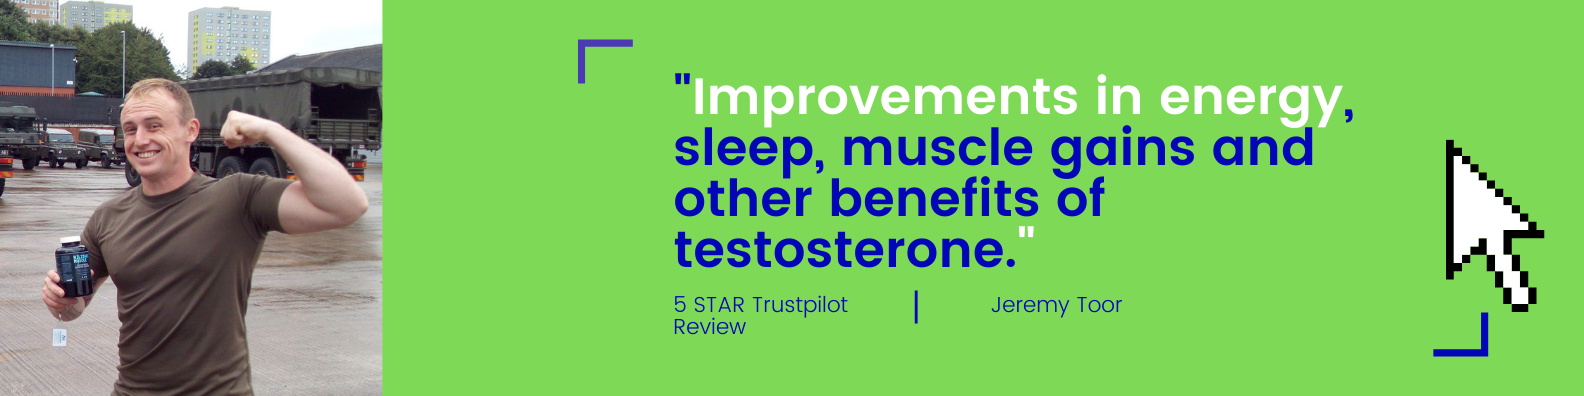 military muscle trustpilot review